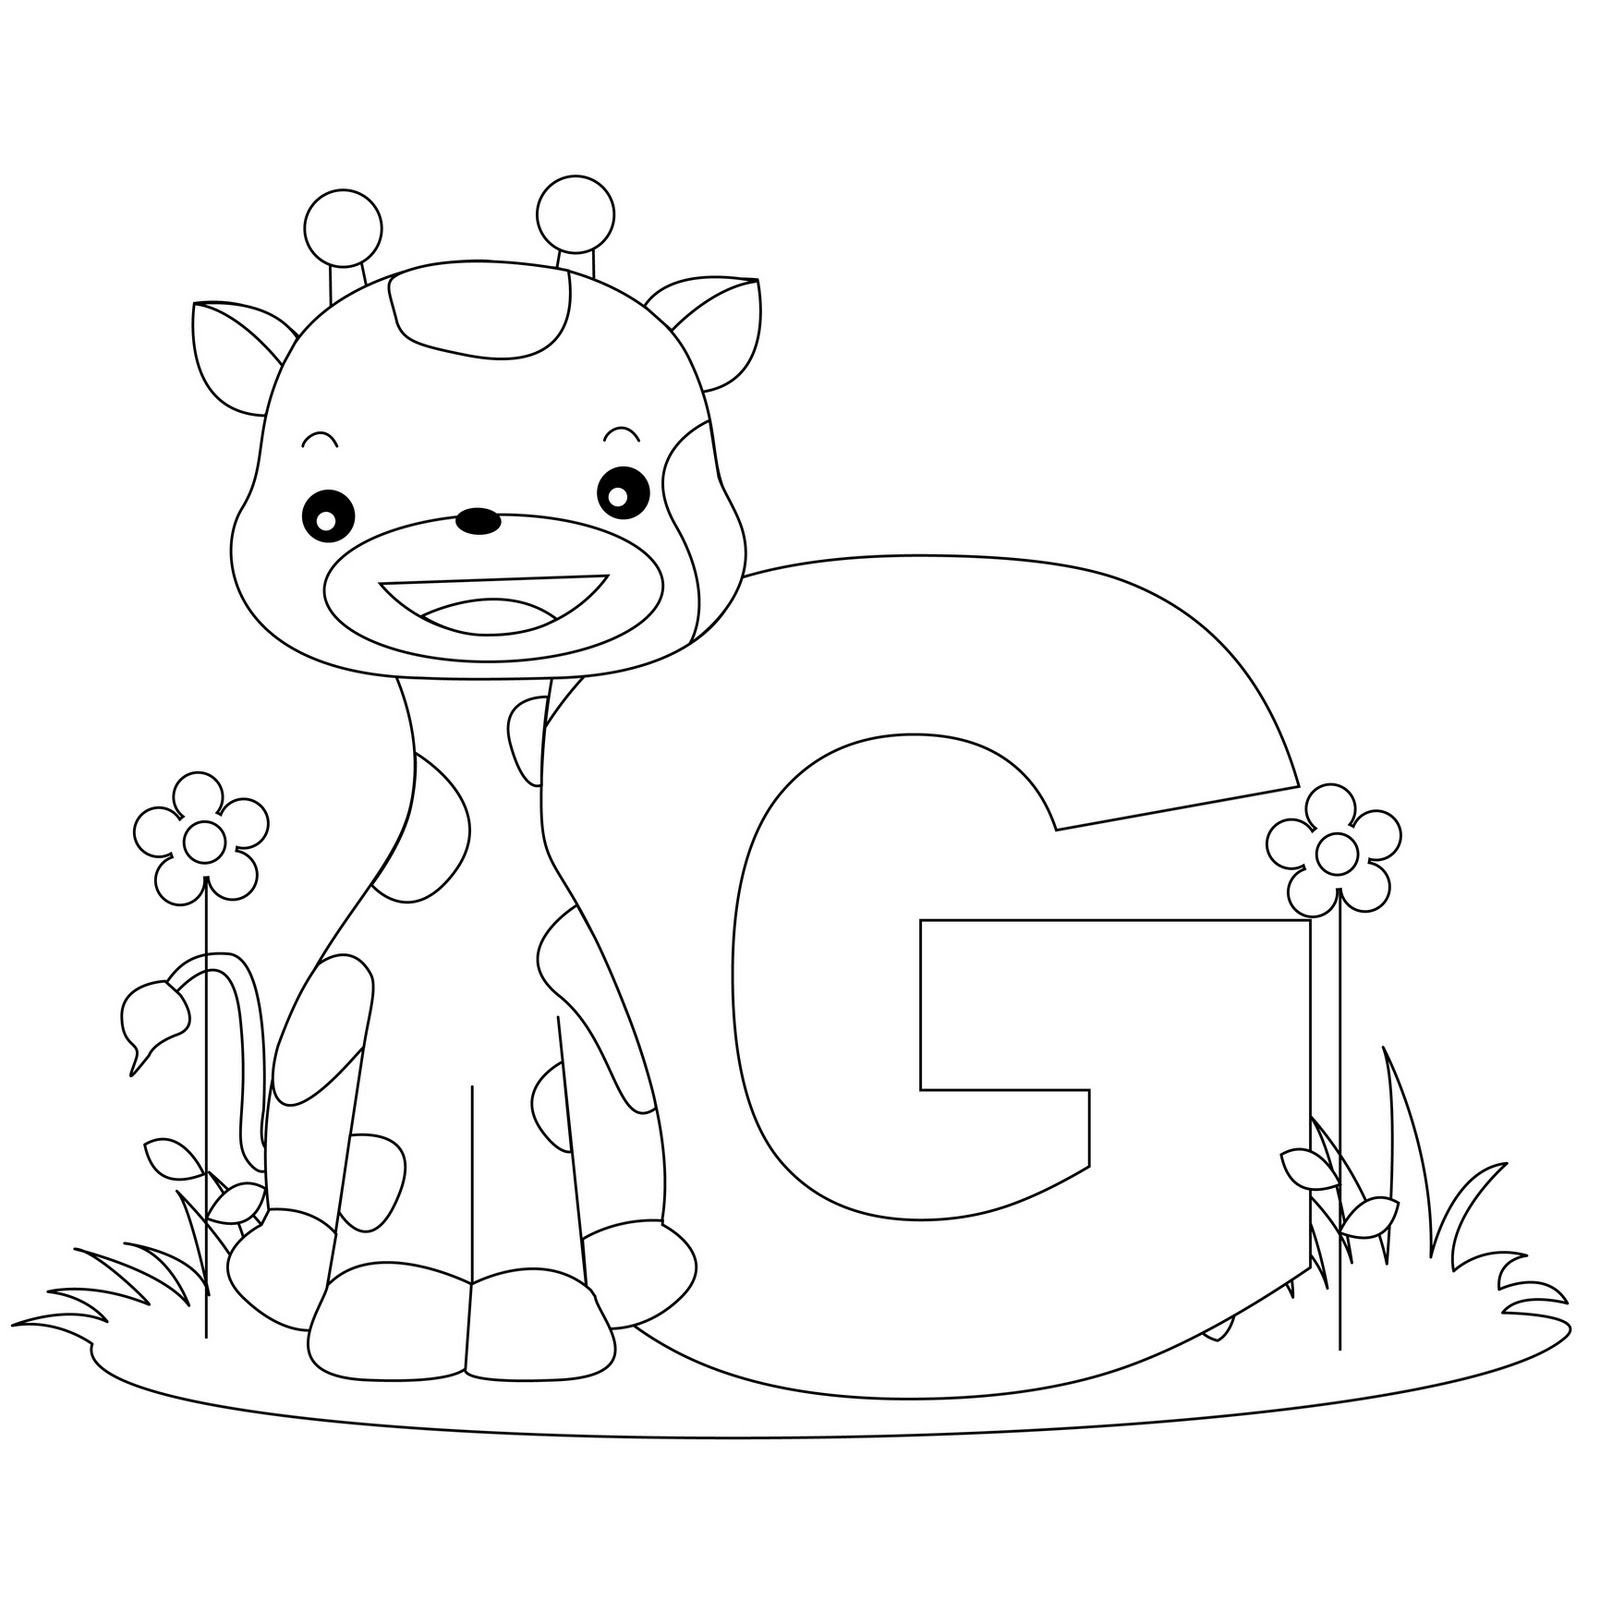 letter g coloring pages - coloring pages letter g